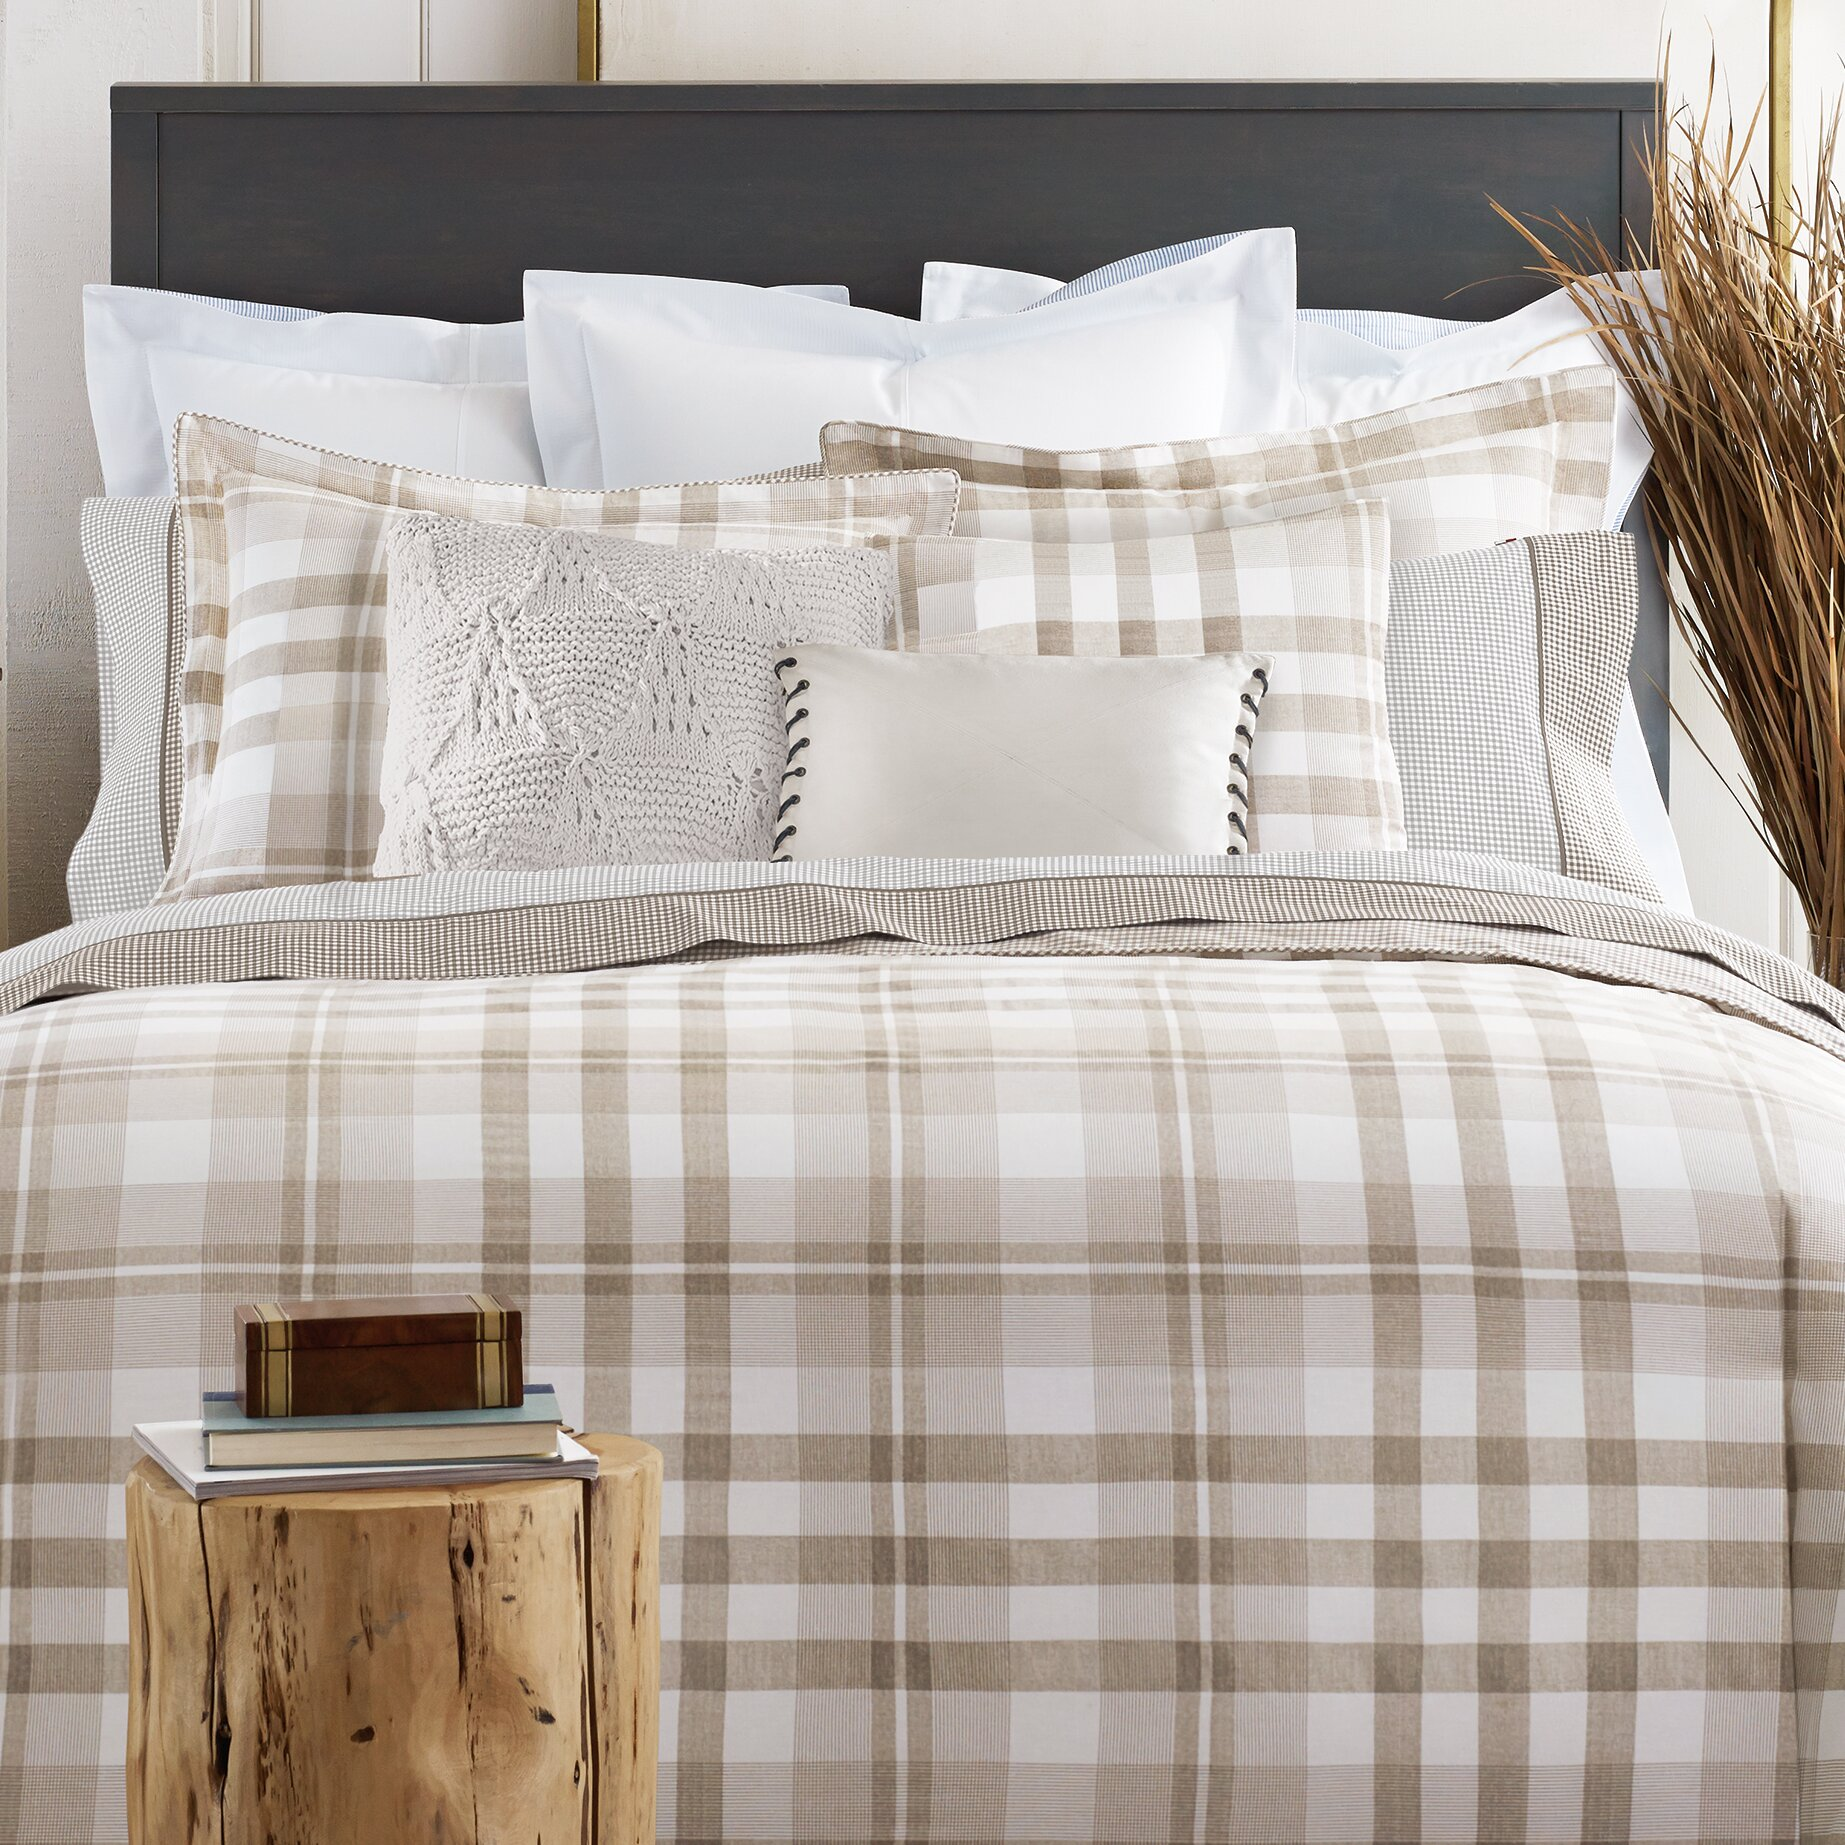 Tommy Hilfiger Range Plaid Comforter Collection Reviews